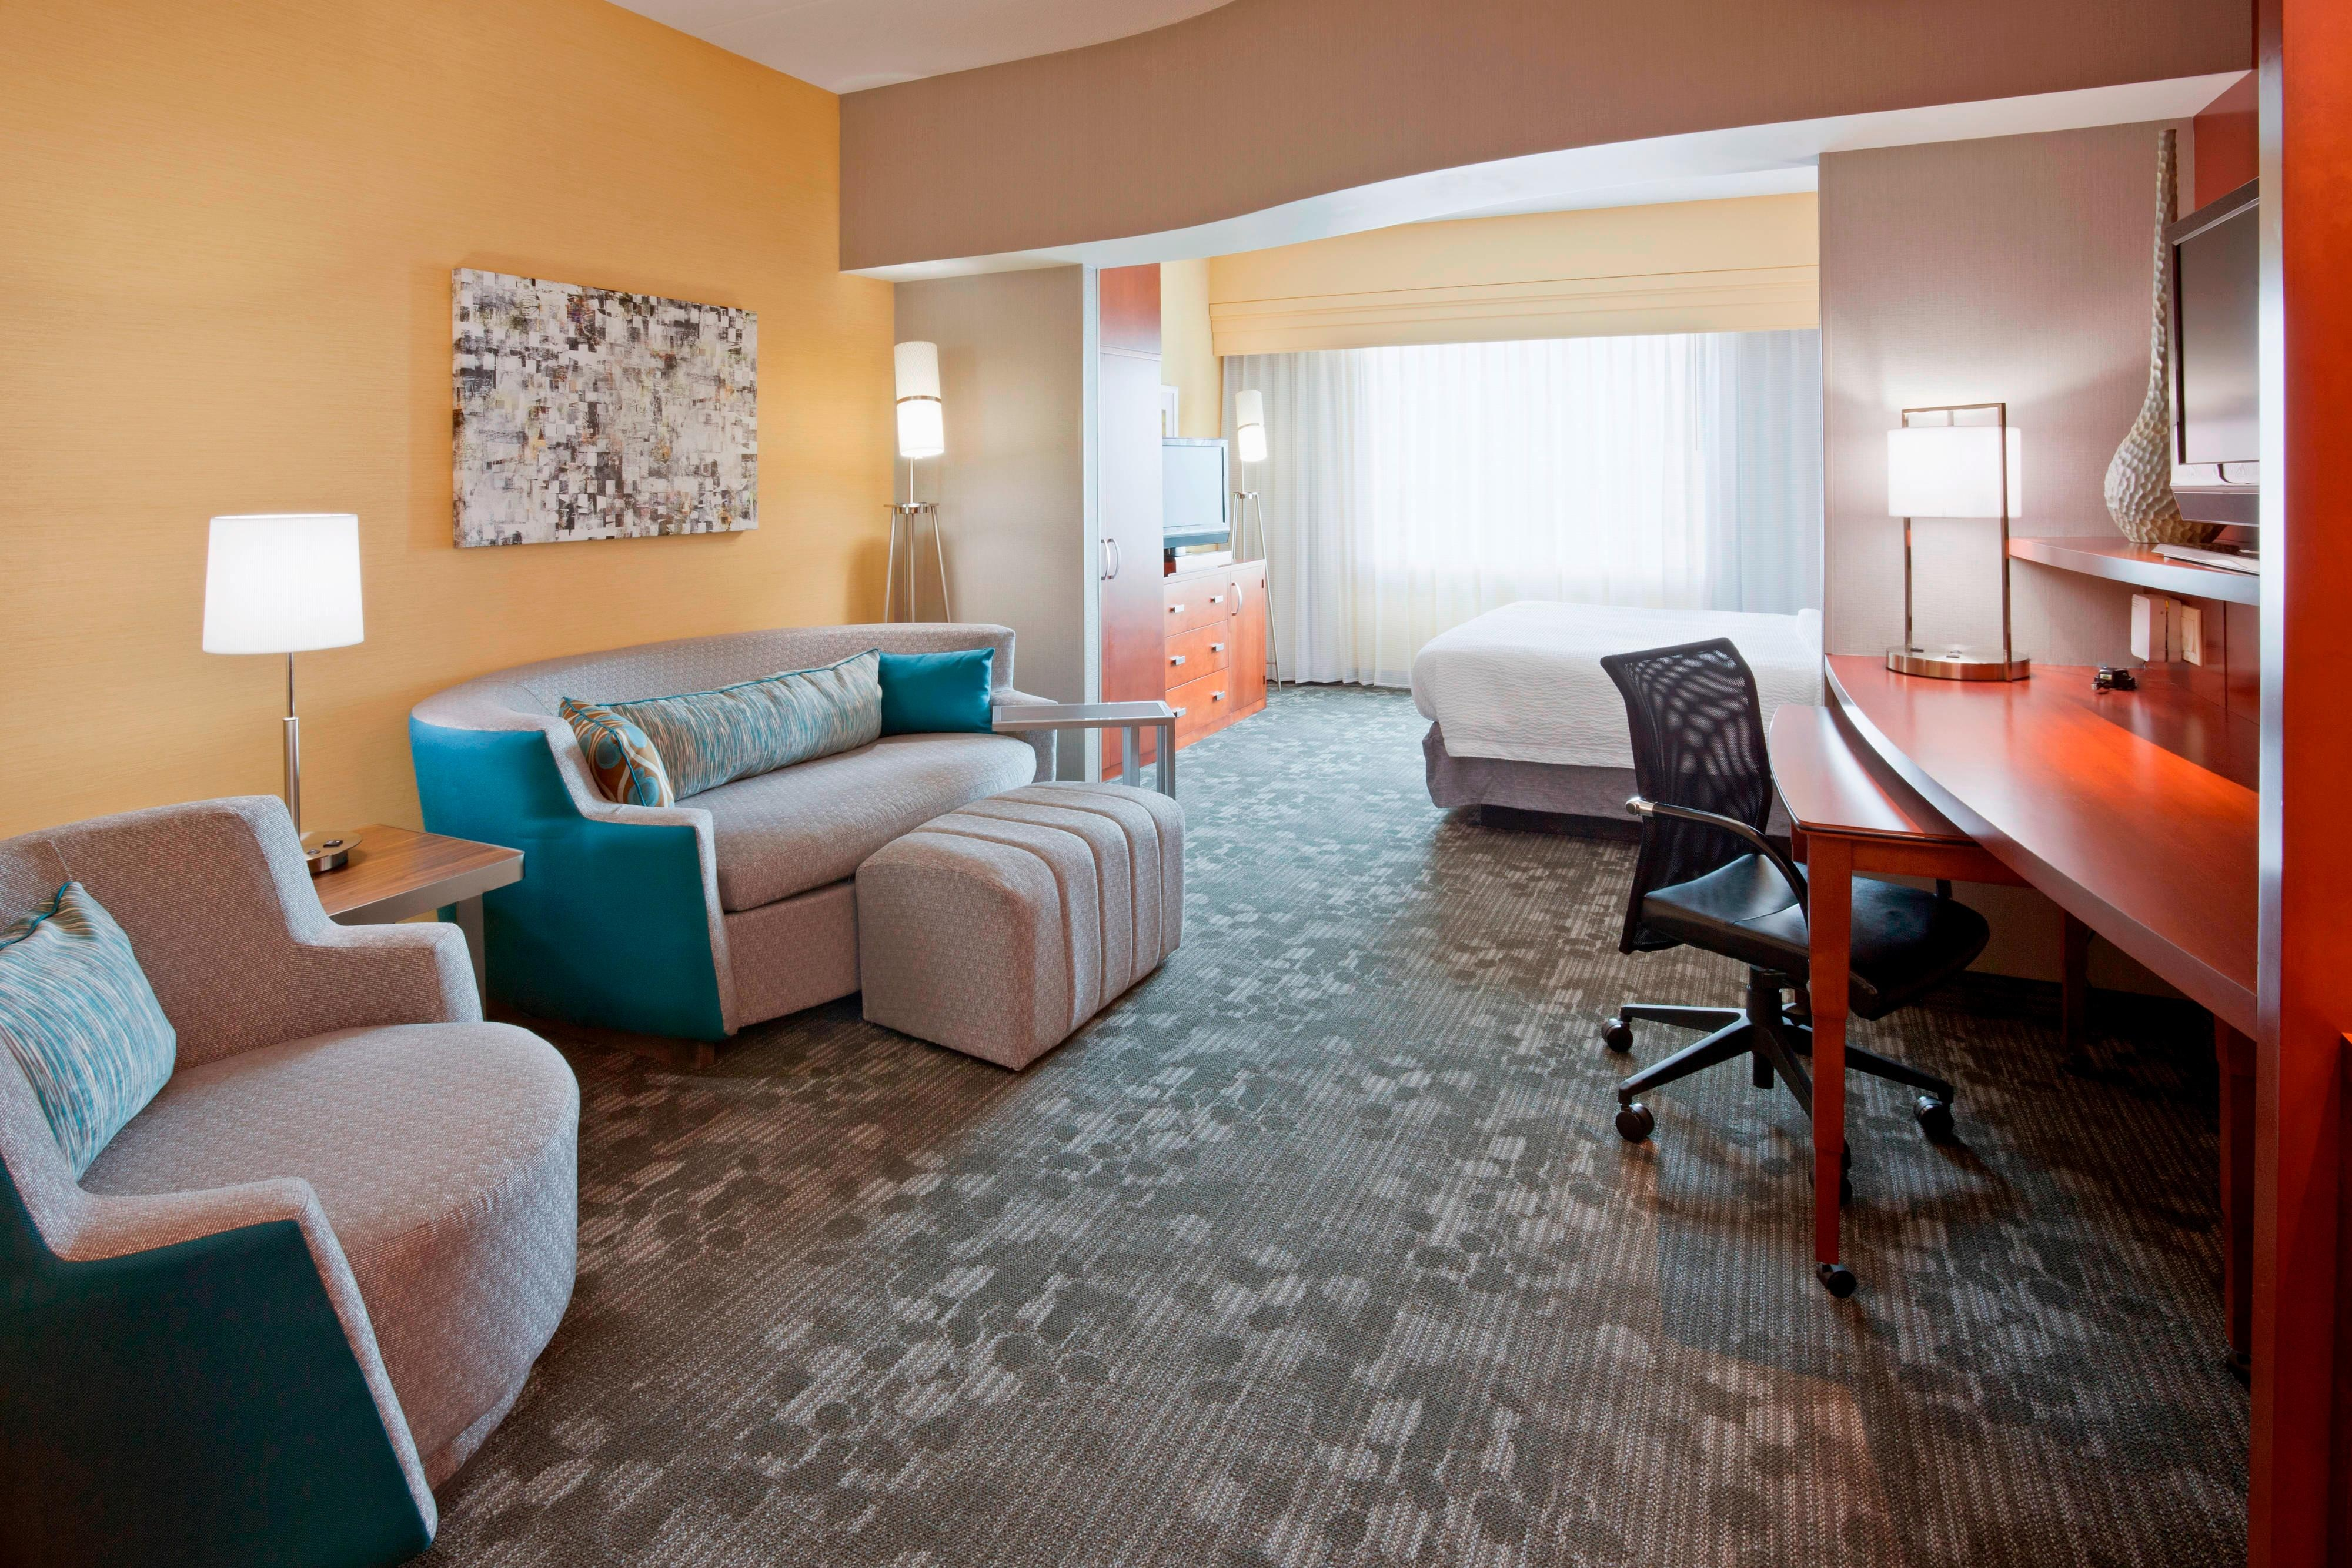 Executive Room at Maple Grove, MN Marriott Hotel